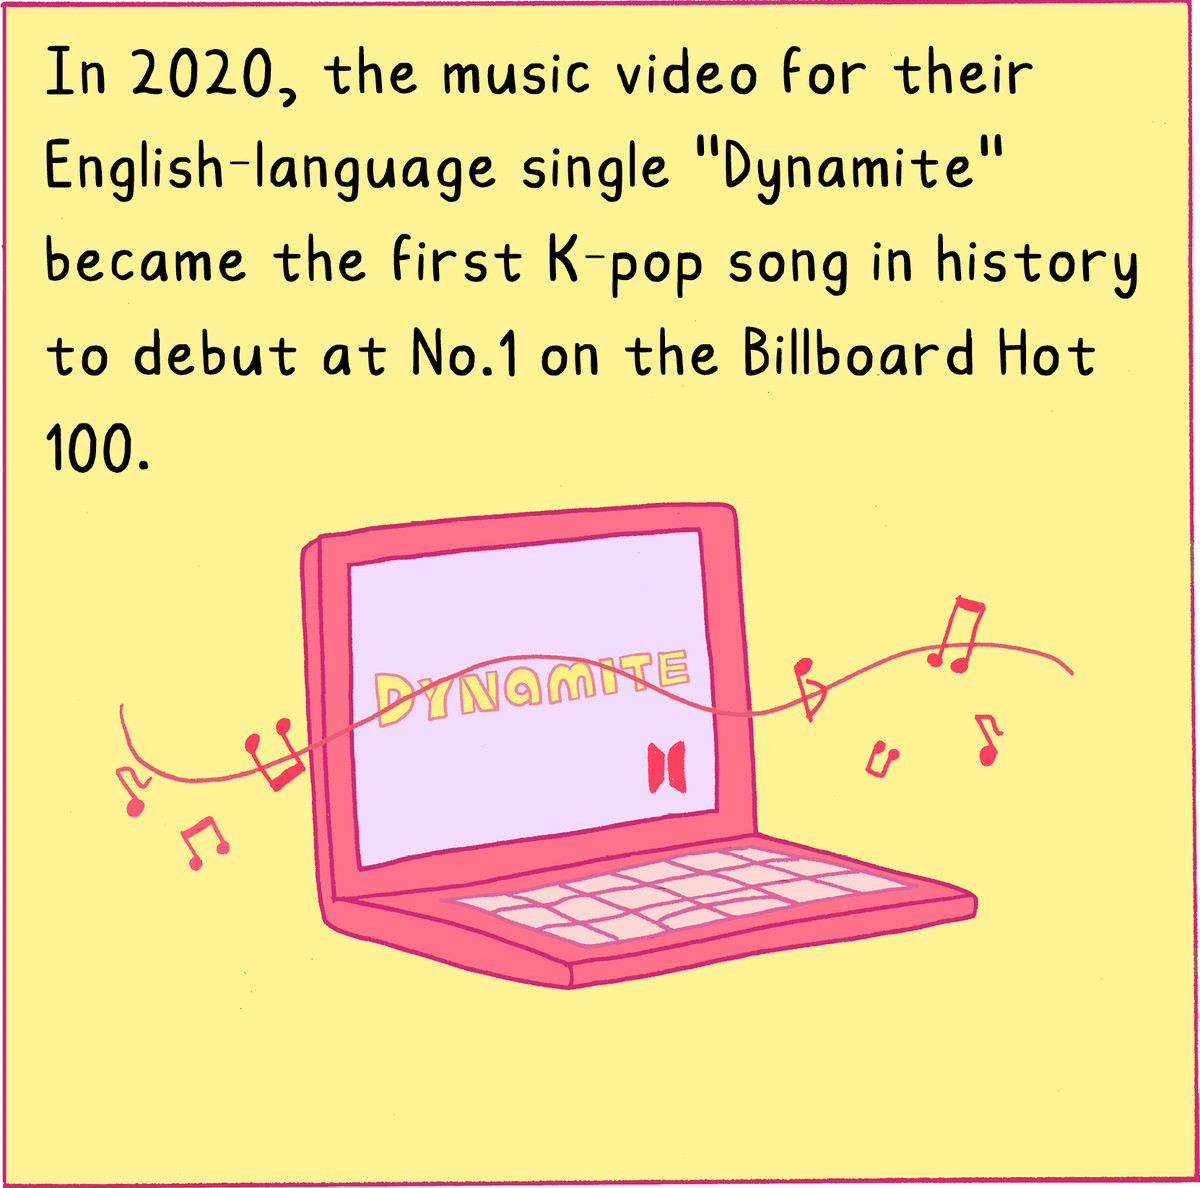 """In 2020, the music video for their English-language single """"Dynamite"""" became the first K-pop song in history to debut at #1 on the Billboard Hot 100."""